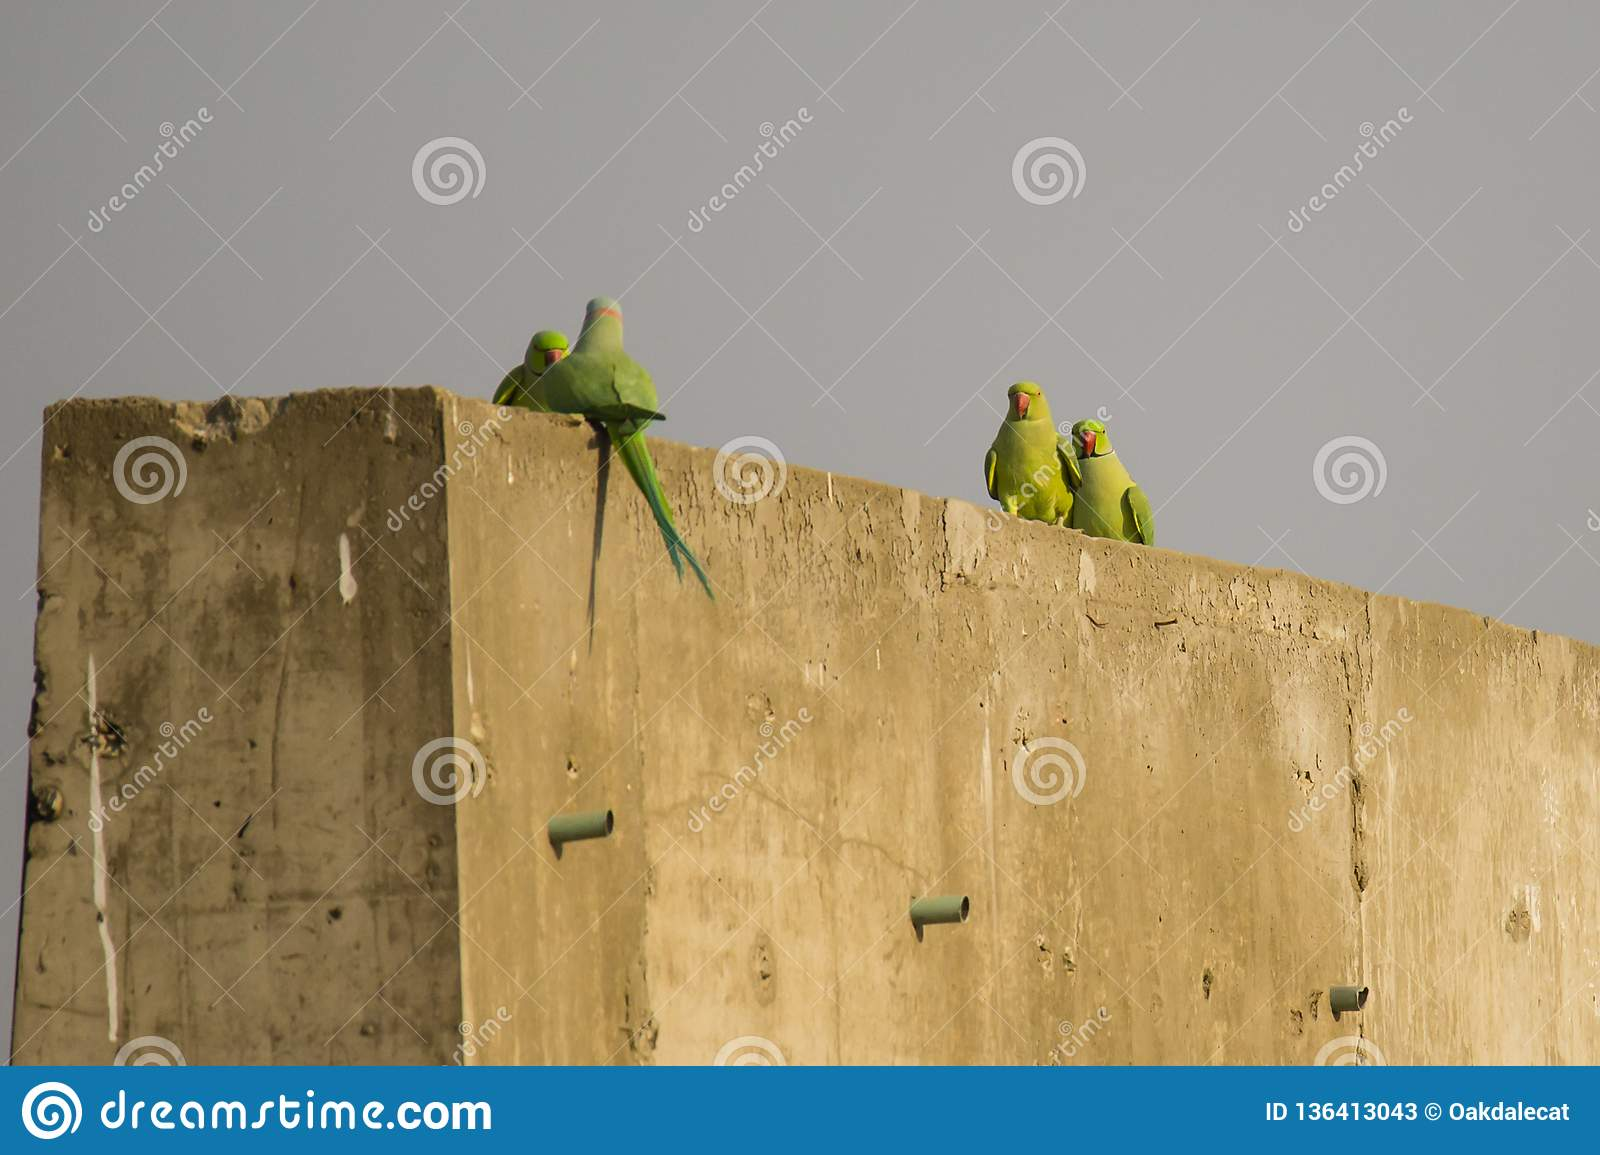 Male And Female Rose Ringed Parakeets In Step Stock Image - Image of